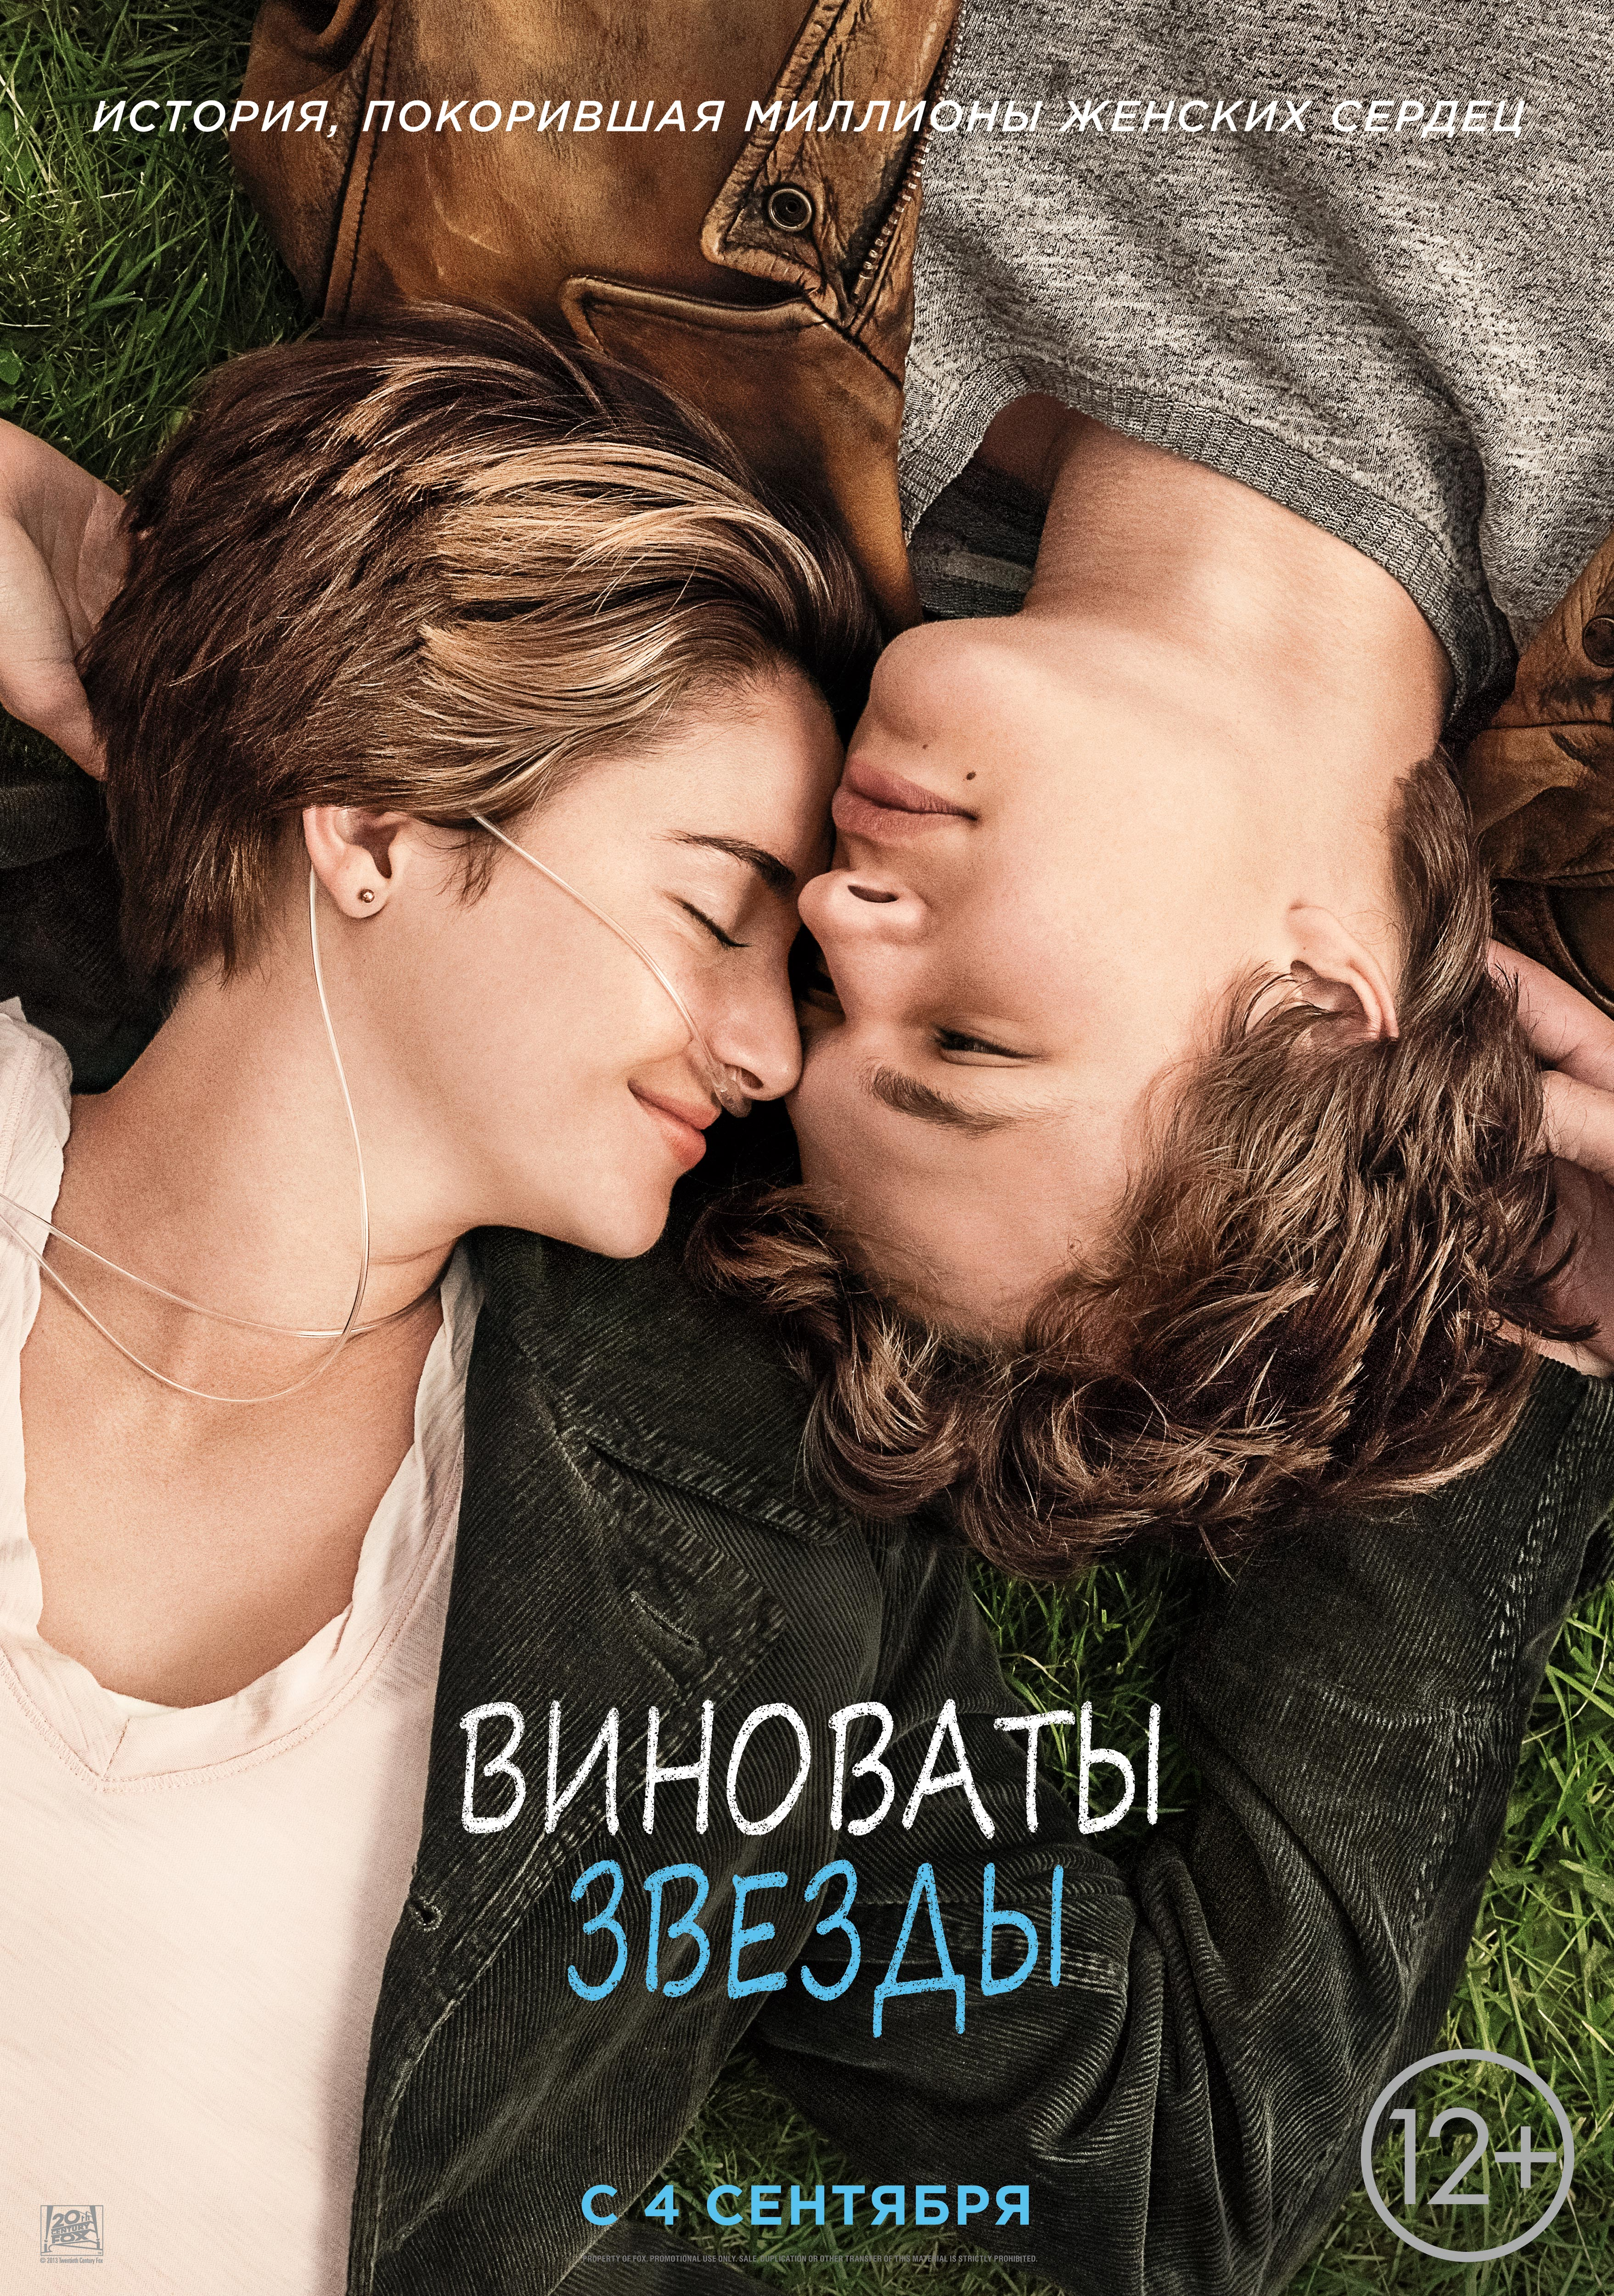 https://st.kp.yandex.net/im/poster/2/4/7/kinopoisk.ru-The-Fault-in-Our-Stars-2470978--o--.jpg